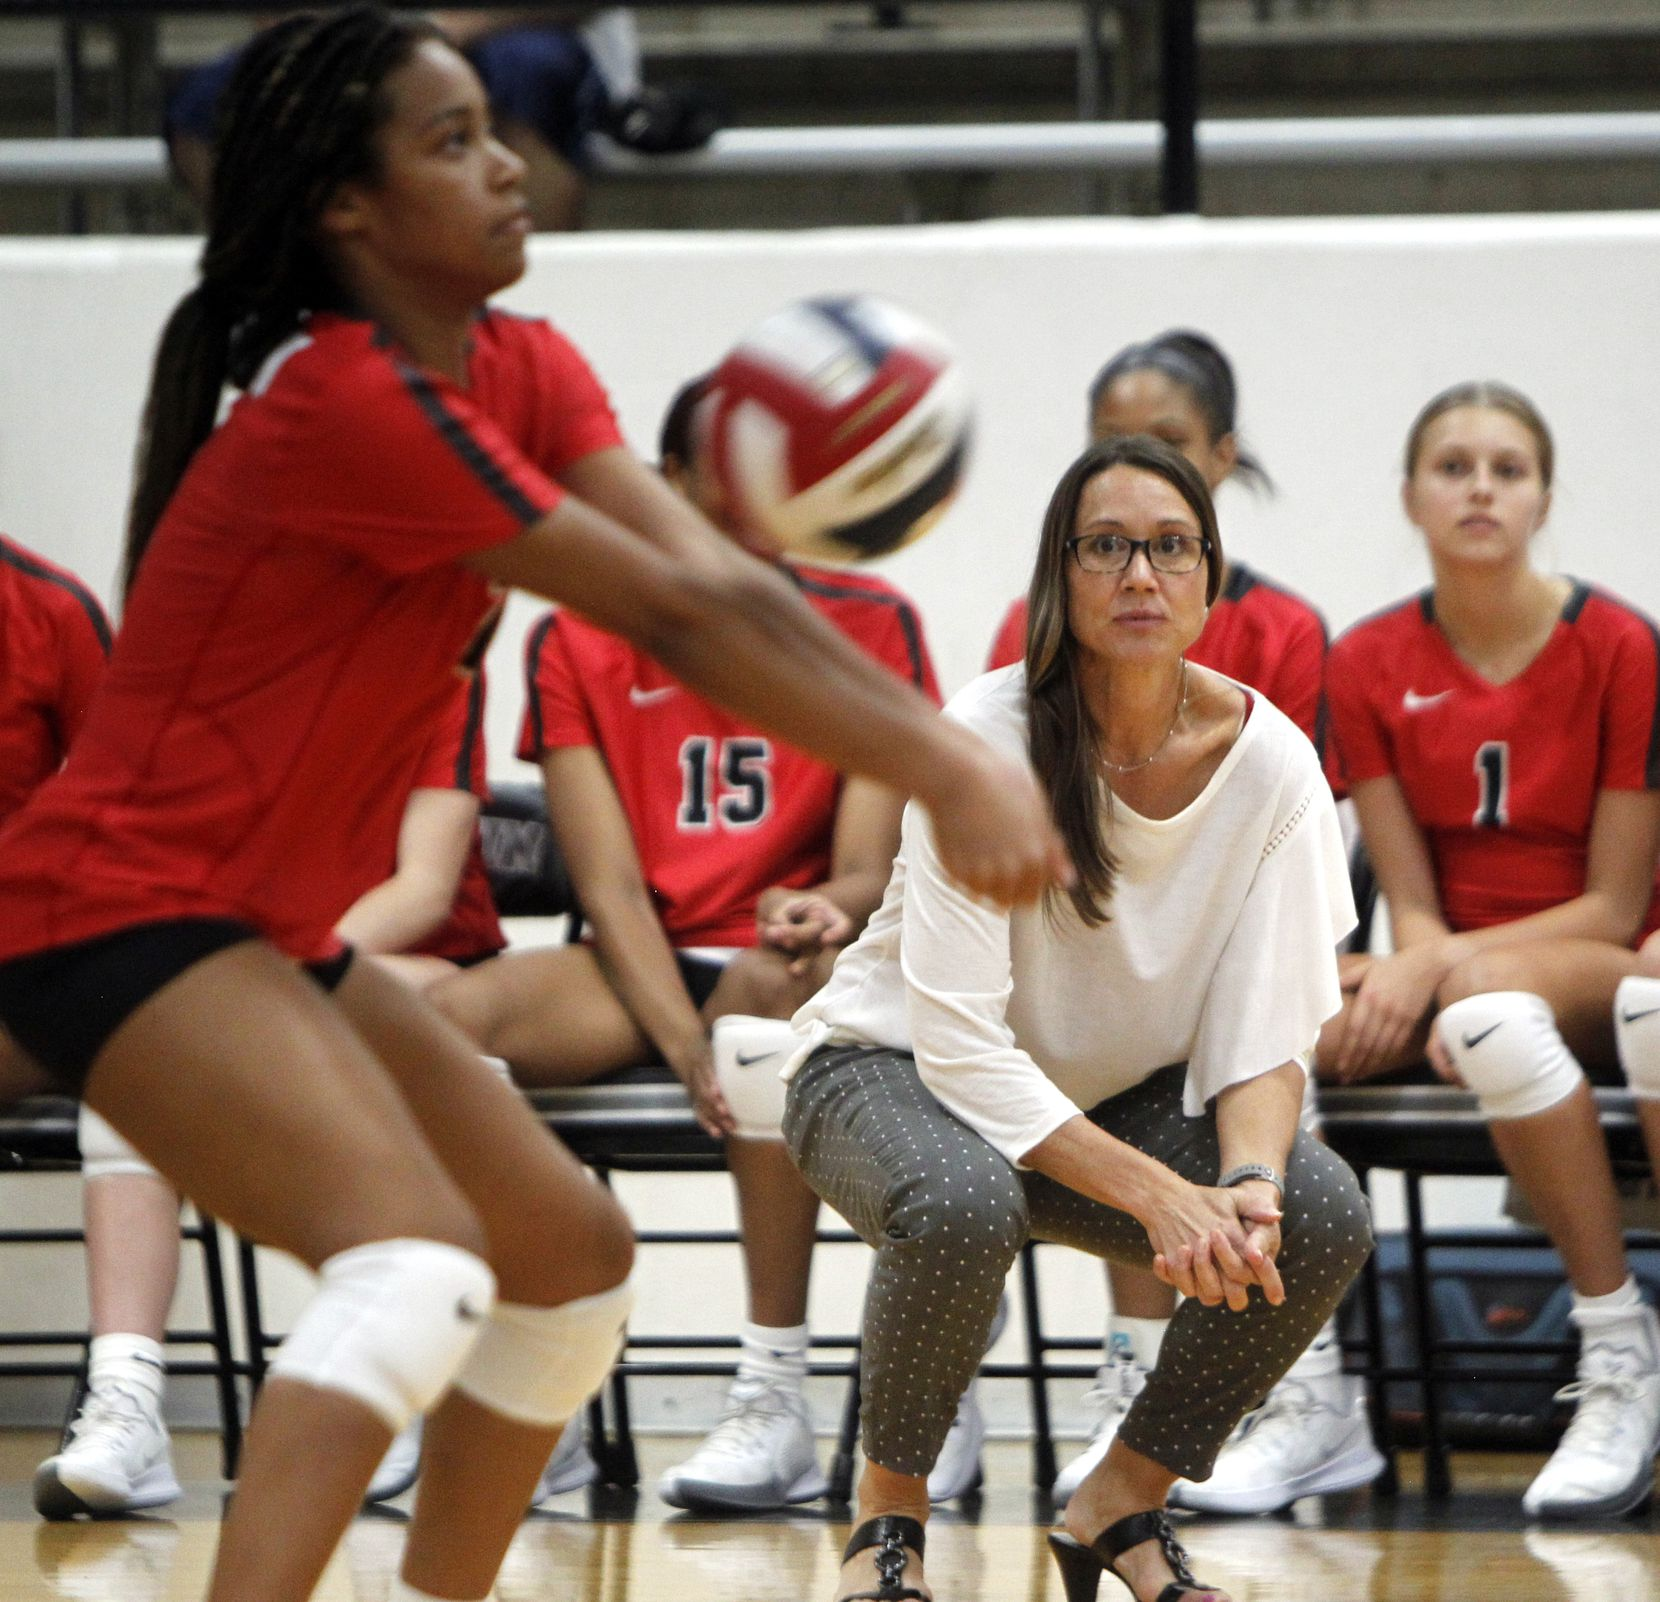 Arlington Martin head coach Rhonda Dunn looks on from the team bench as Aubrey Wright (2) sets the ball during the opening set against South Grand Prairie. Martin won the match in straight sets. The two teams played their volleyball match at Arlington Martin High School in Arlington on September 14, 2021. (Steve Hamm/ Special Contributor)